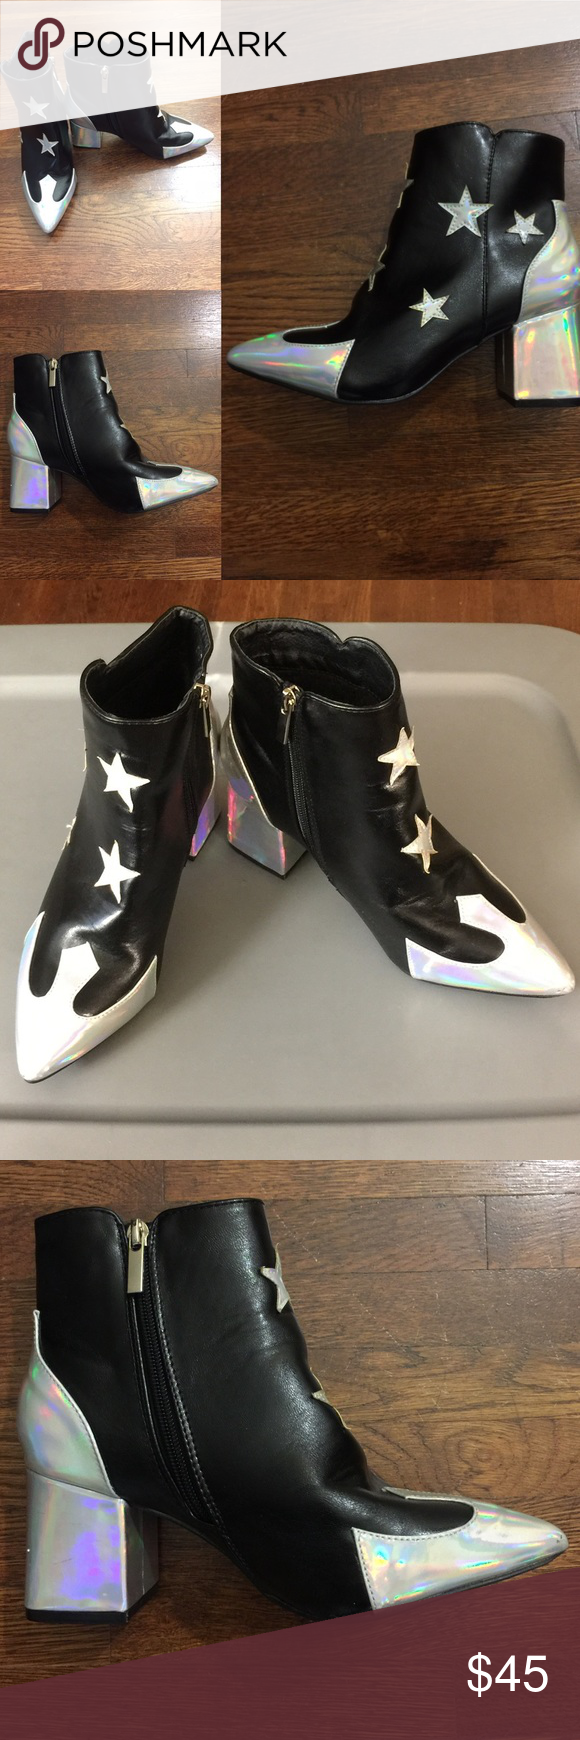 Daisy Street Black Silver Holographic Boots Very good condition ⭐️side zip closure ⭐️ 2 1/2 inch heel⭐️sole under left boot worn⭐️block heel ⭐️Super cute‼️ man-made materials ⭐️minor blemishes Daisy Street Shoes Ankle Boots & Booties